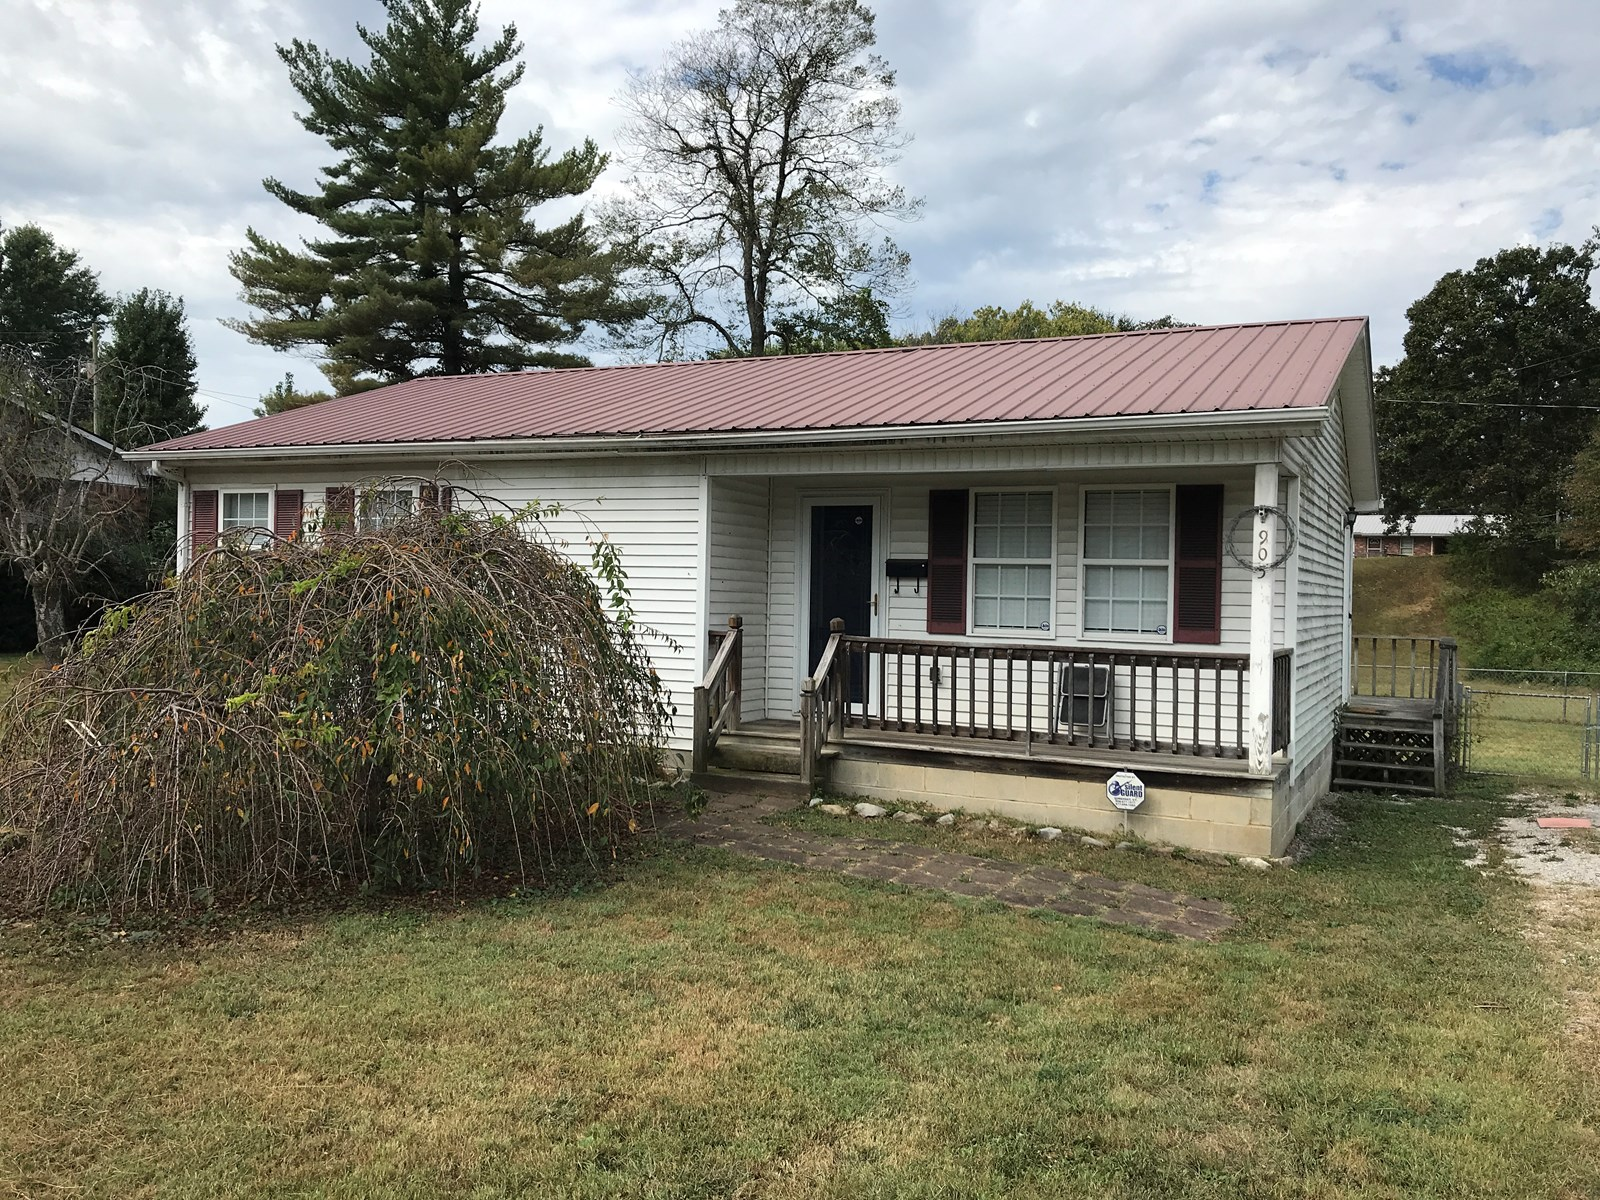 Home in Town for Sale in Albany, Kentucky